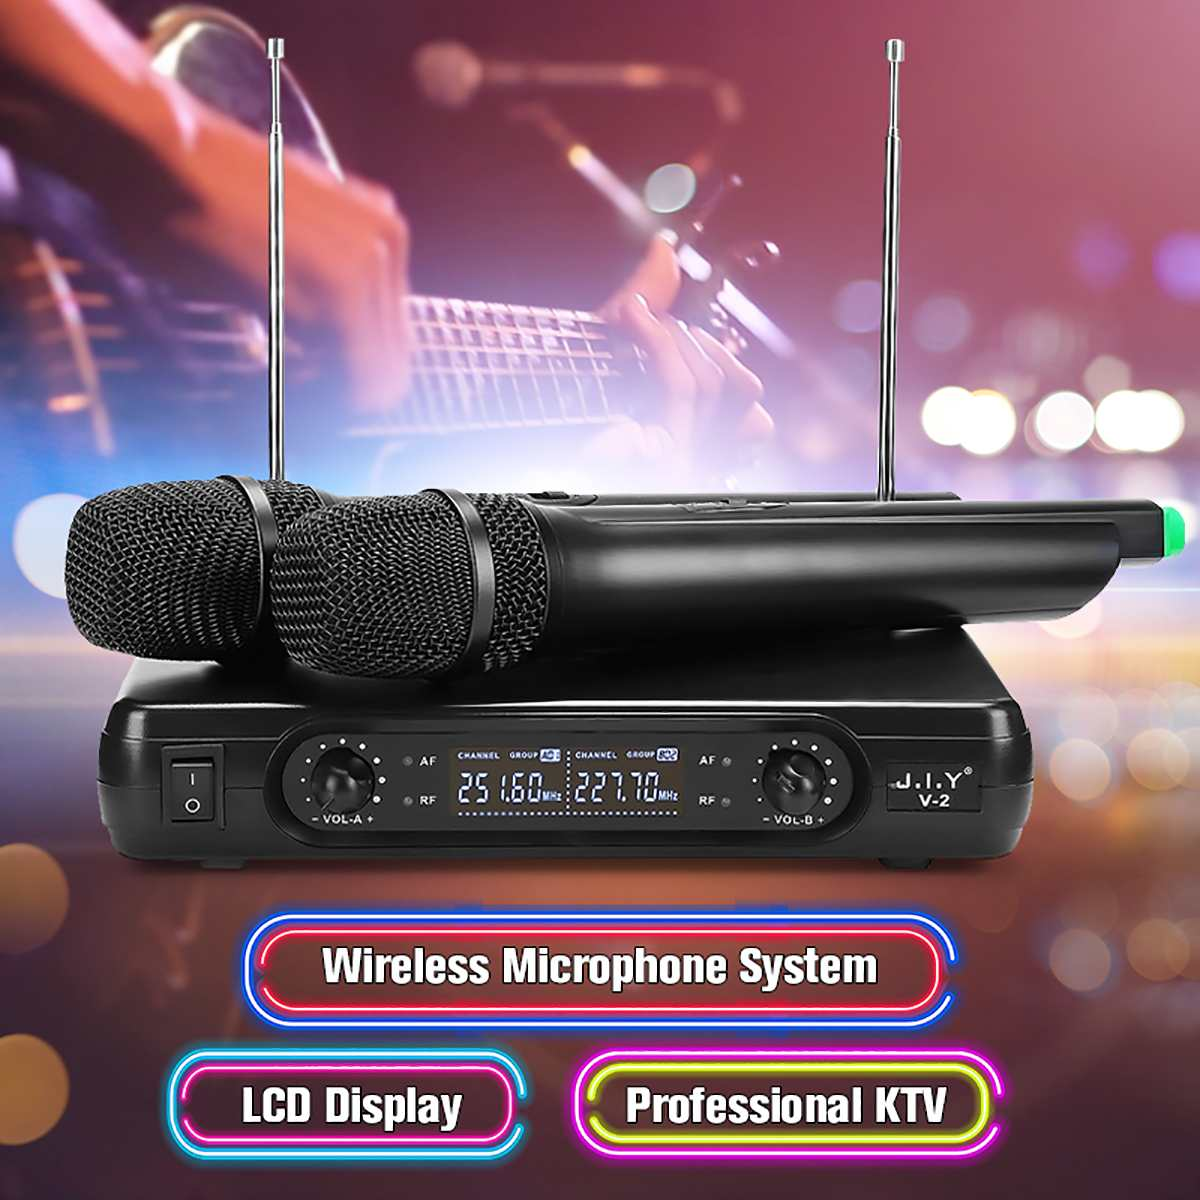 Dual Cordless Handheld Mic 2 Channel Wireless Microphone System with LCD Display High-fidelity Stability Large Receiving